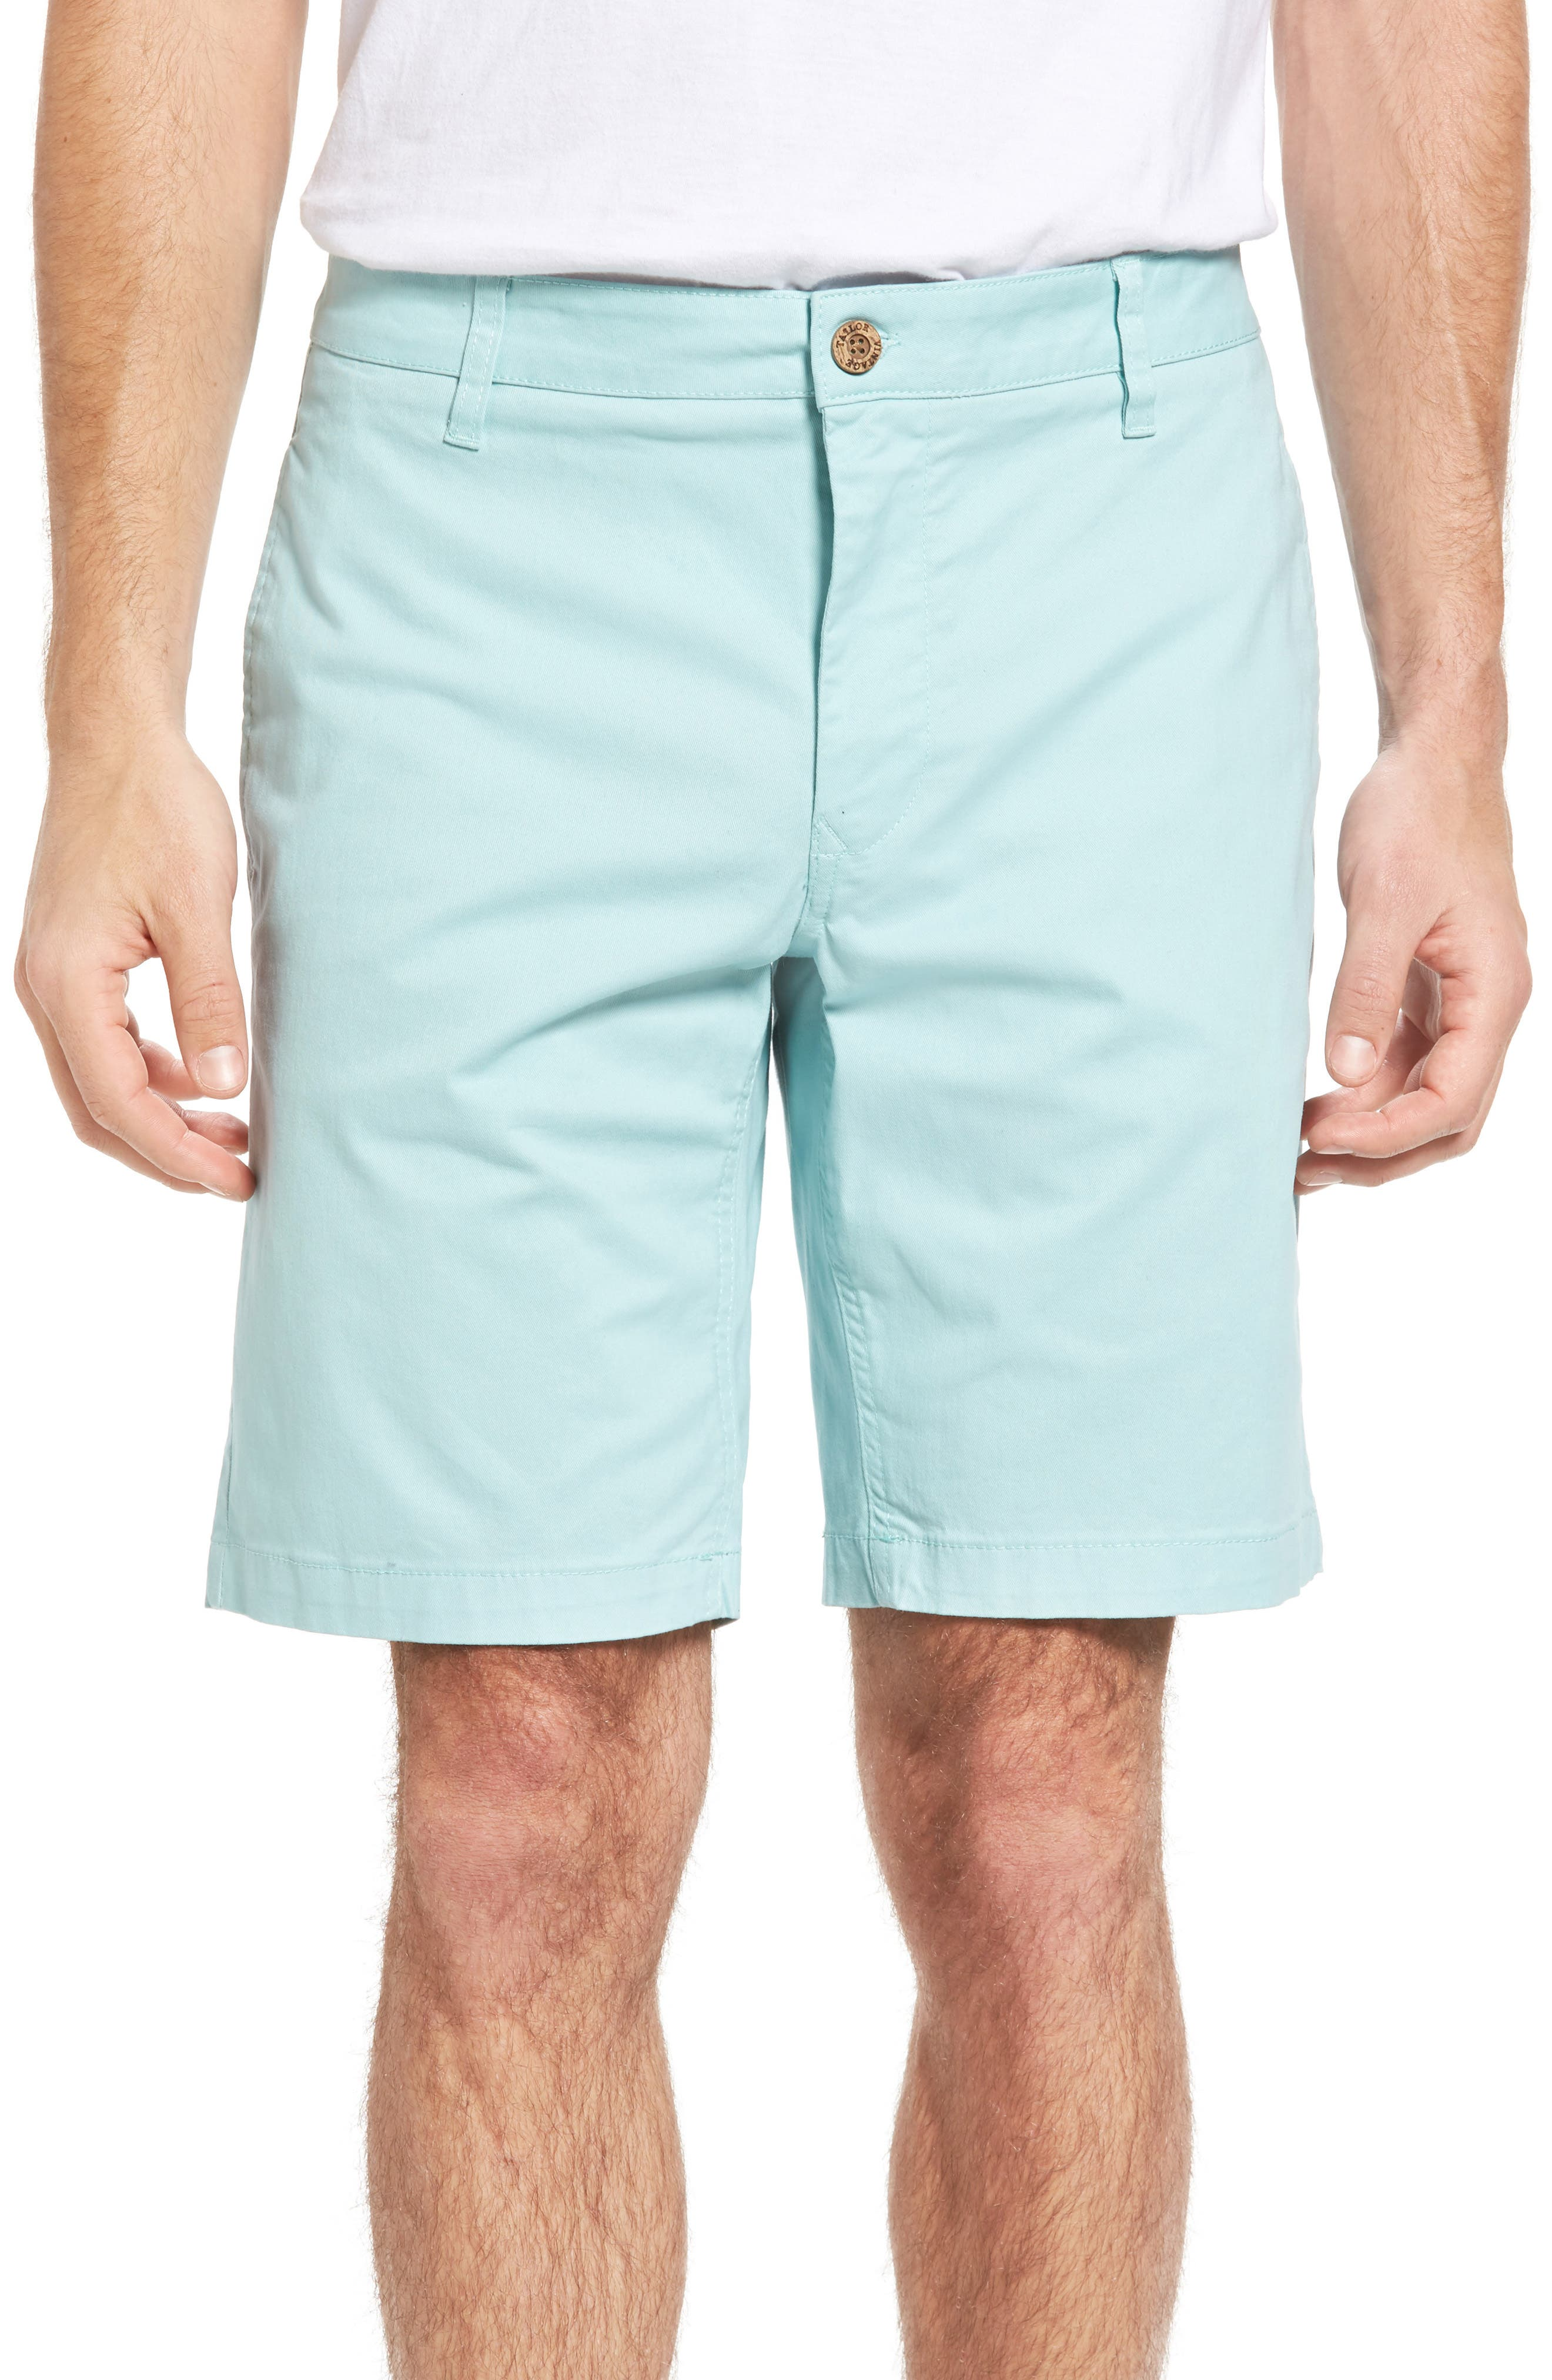 Main Image - Tailor Vintage Stretch Twill Walking Shorts